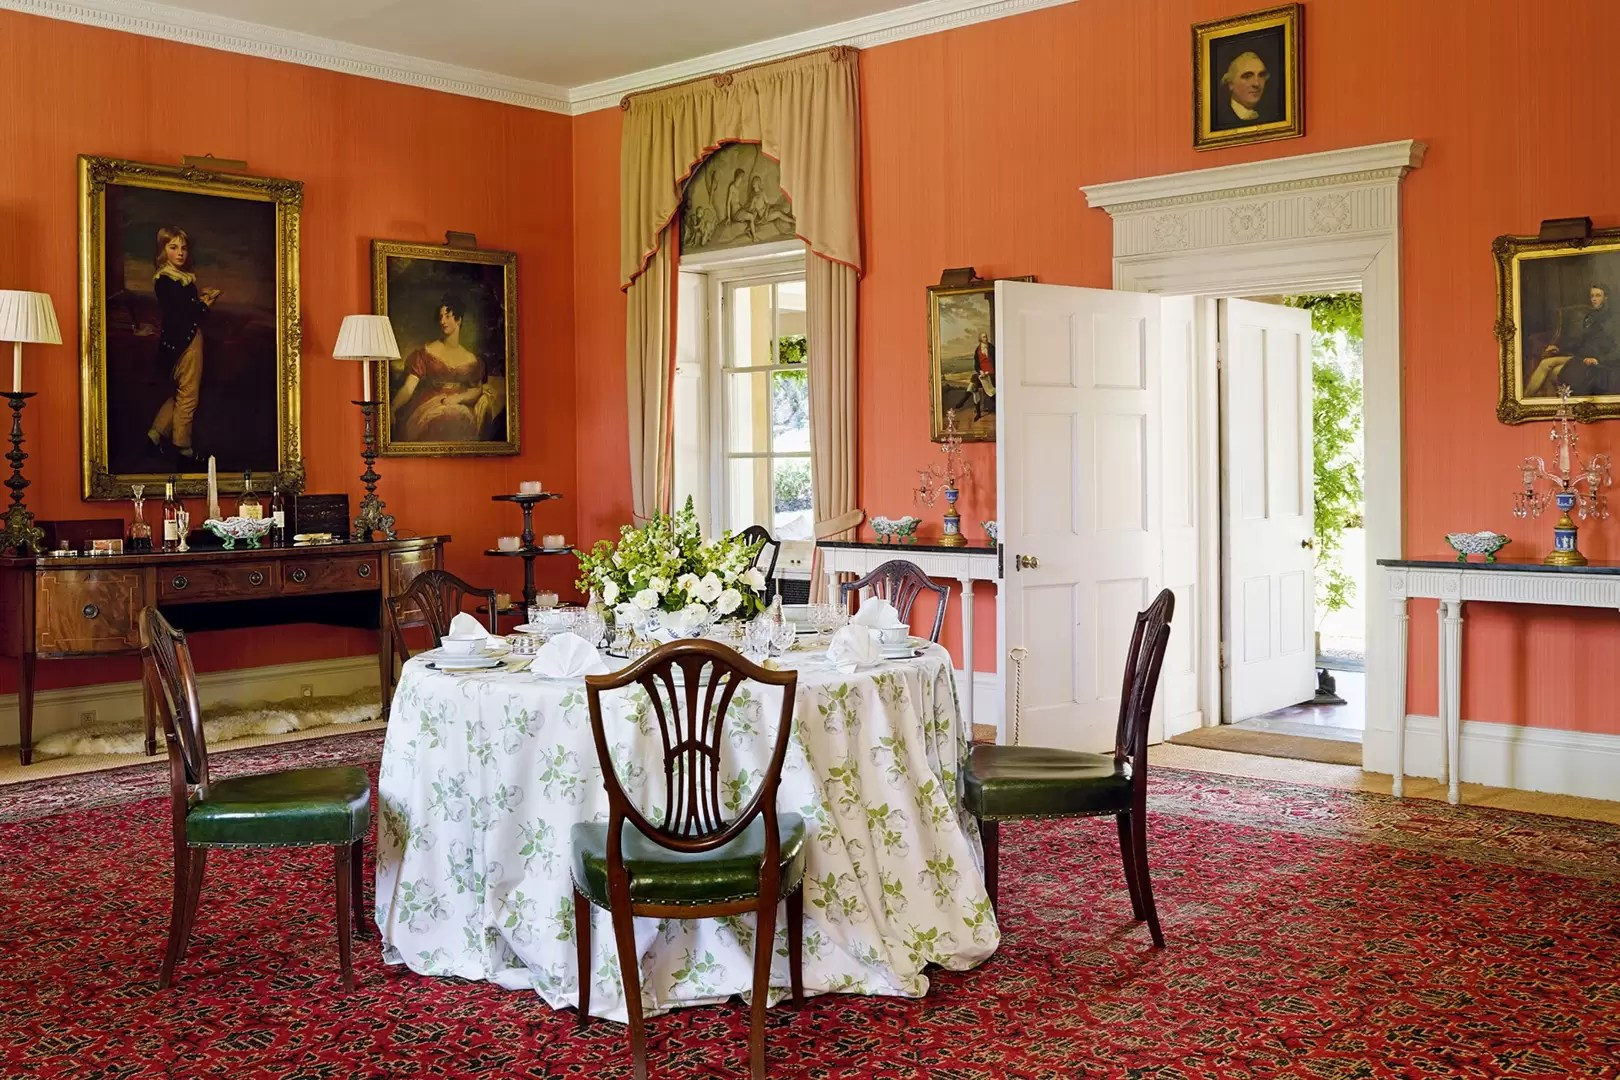 English Country House Style Its History And How To Get The Look House Garden